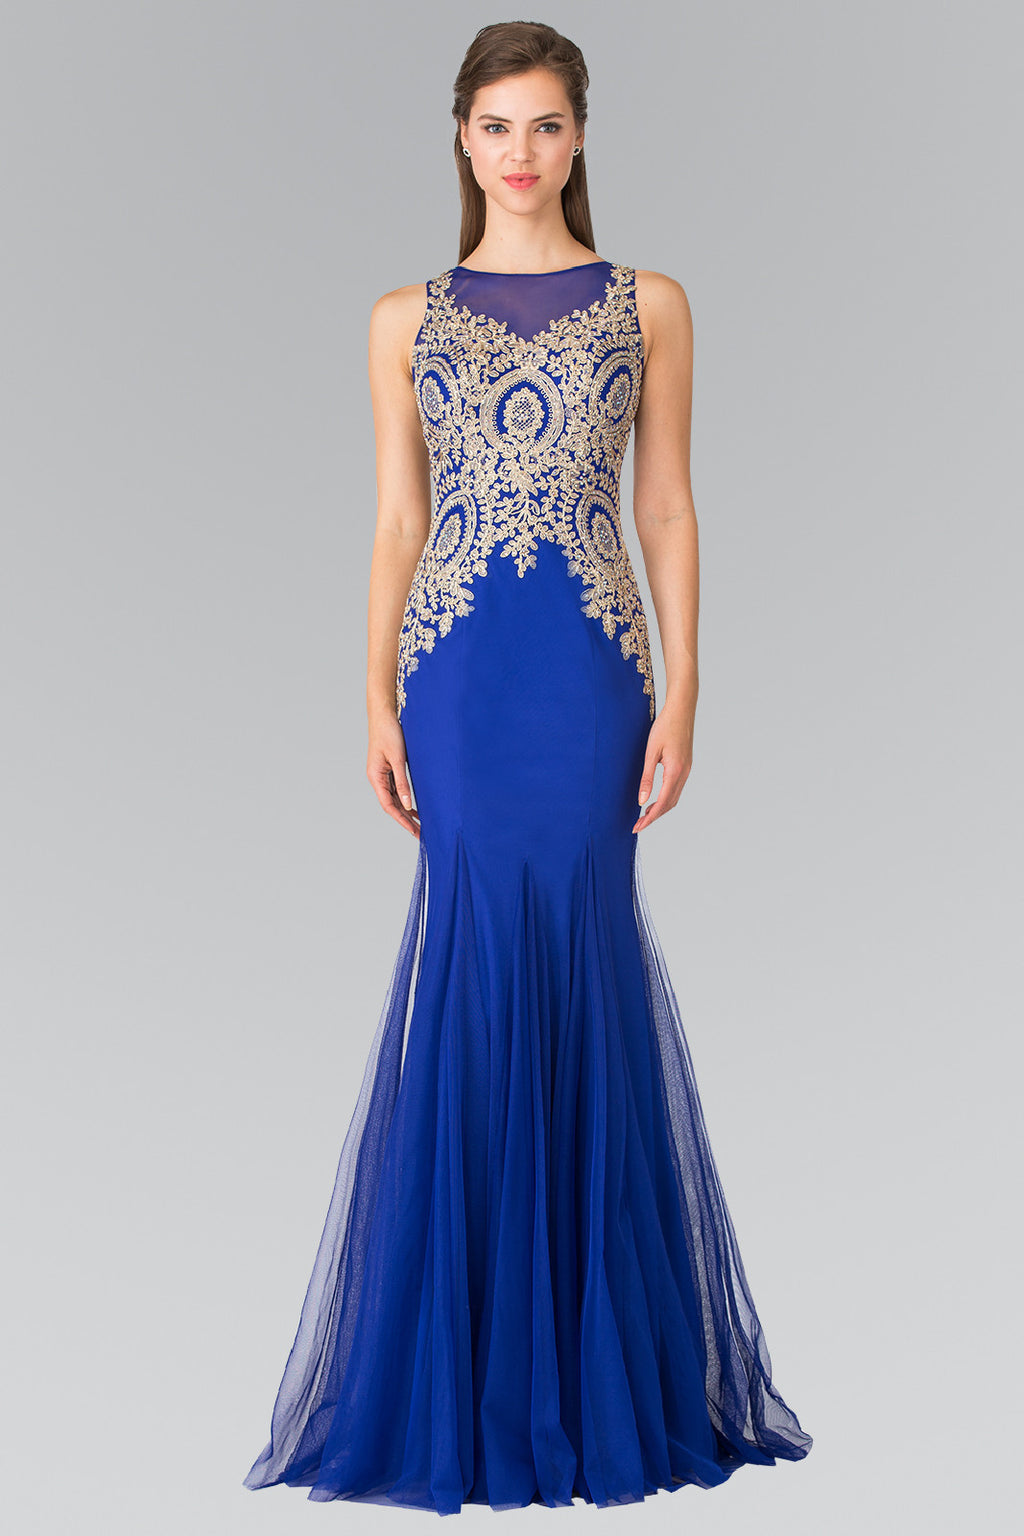 Trendy mermaid formal dress GL2283 - Simply Fab Dress